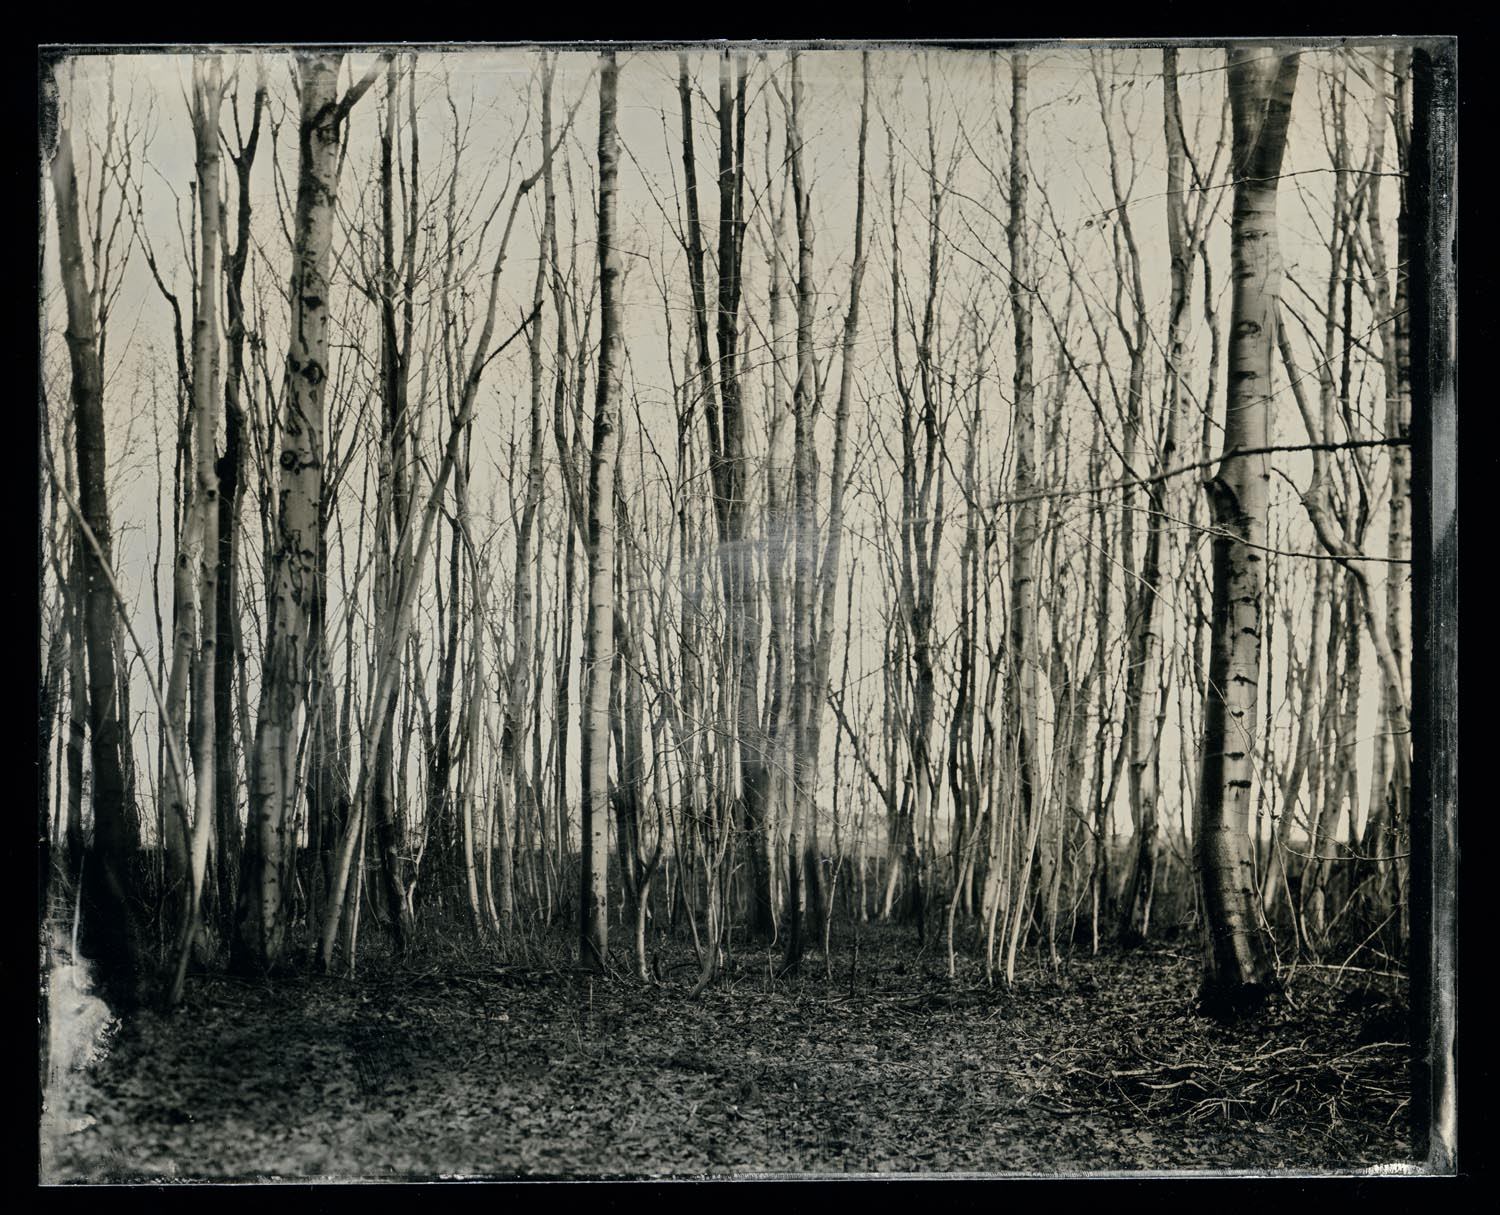 wetplate-scan158.jpg